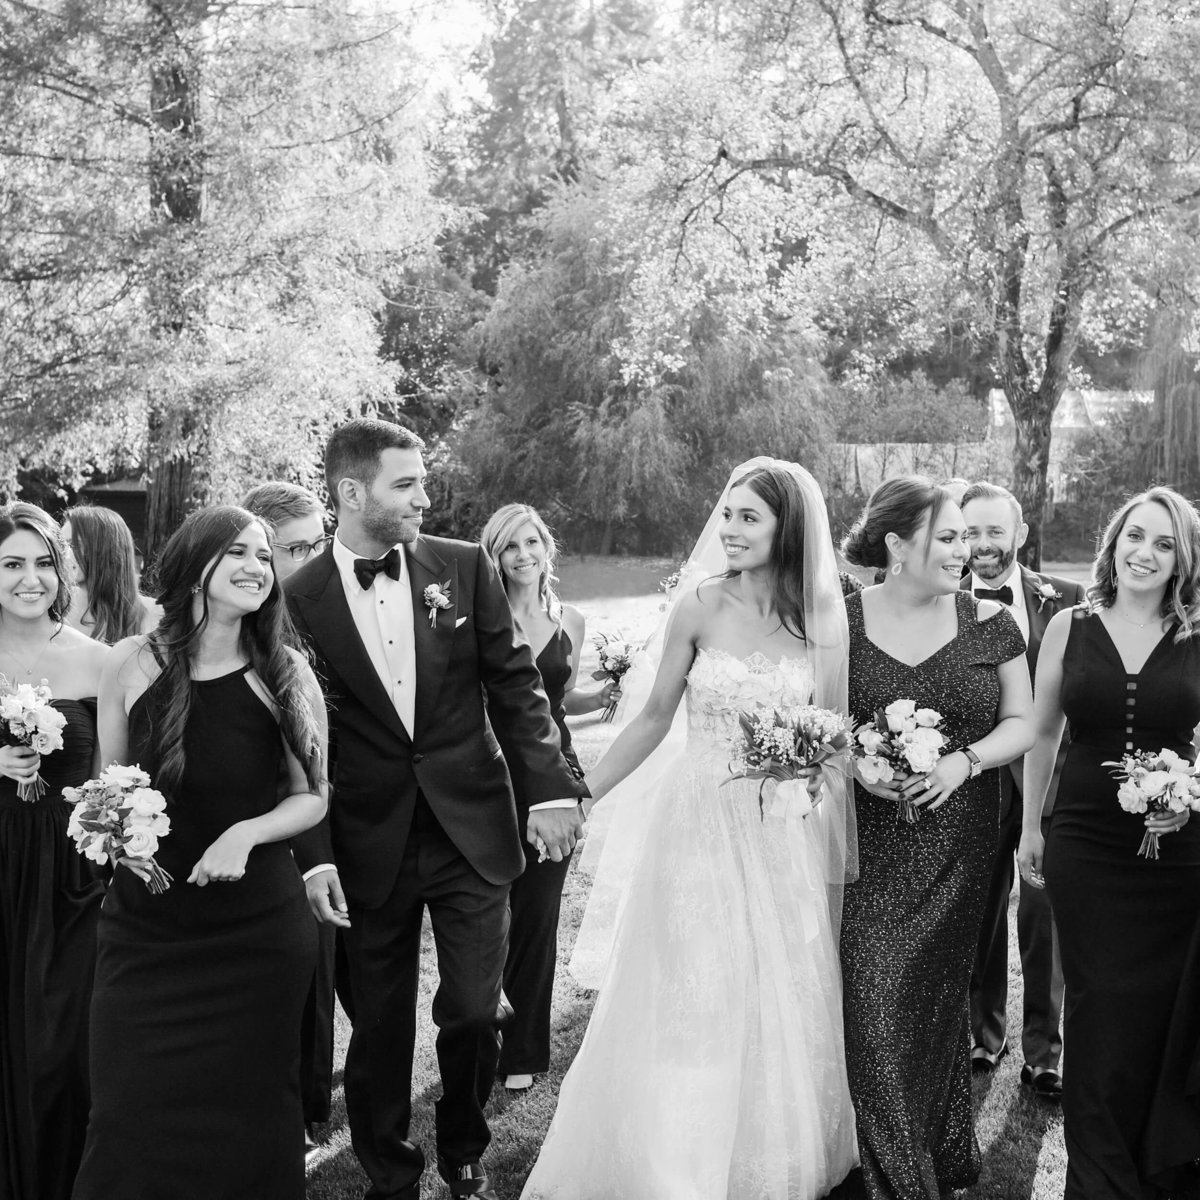 50-KTMerry-weddings-Napa-Valley-wedding-party-portrait